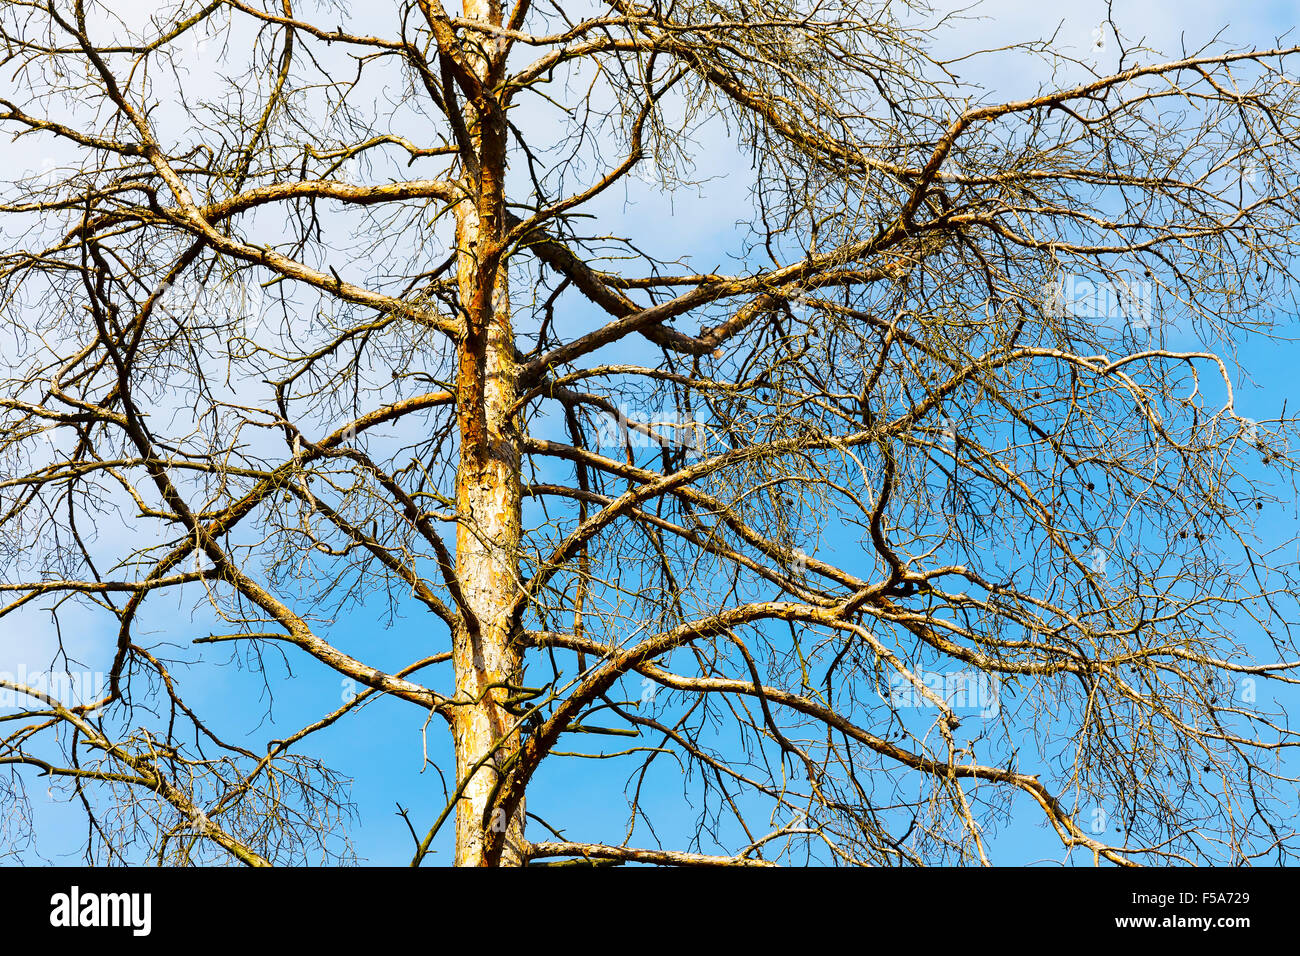 Upper branches of a tree - Stock Image